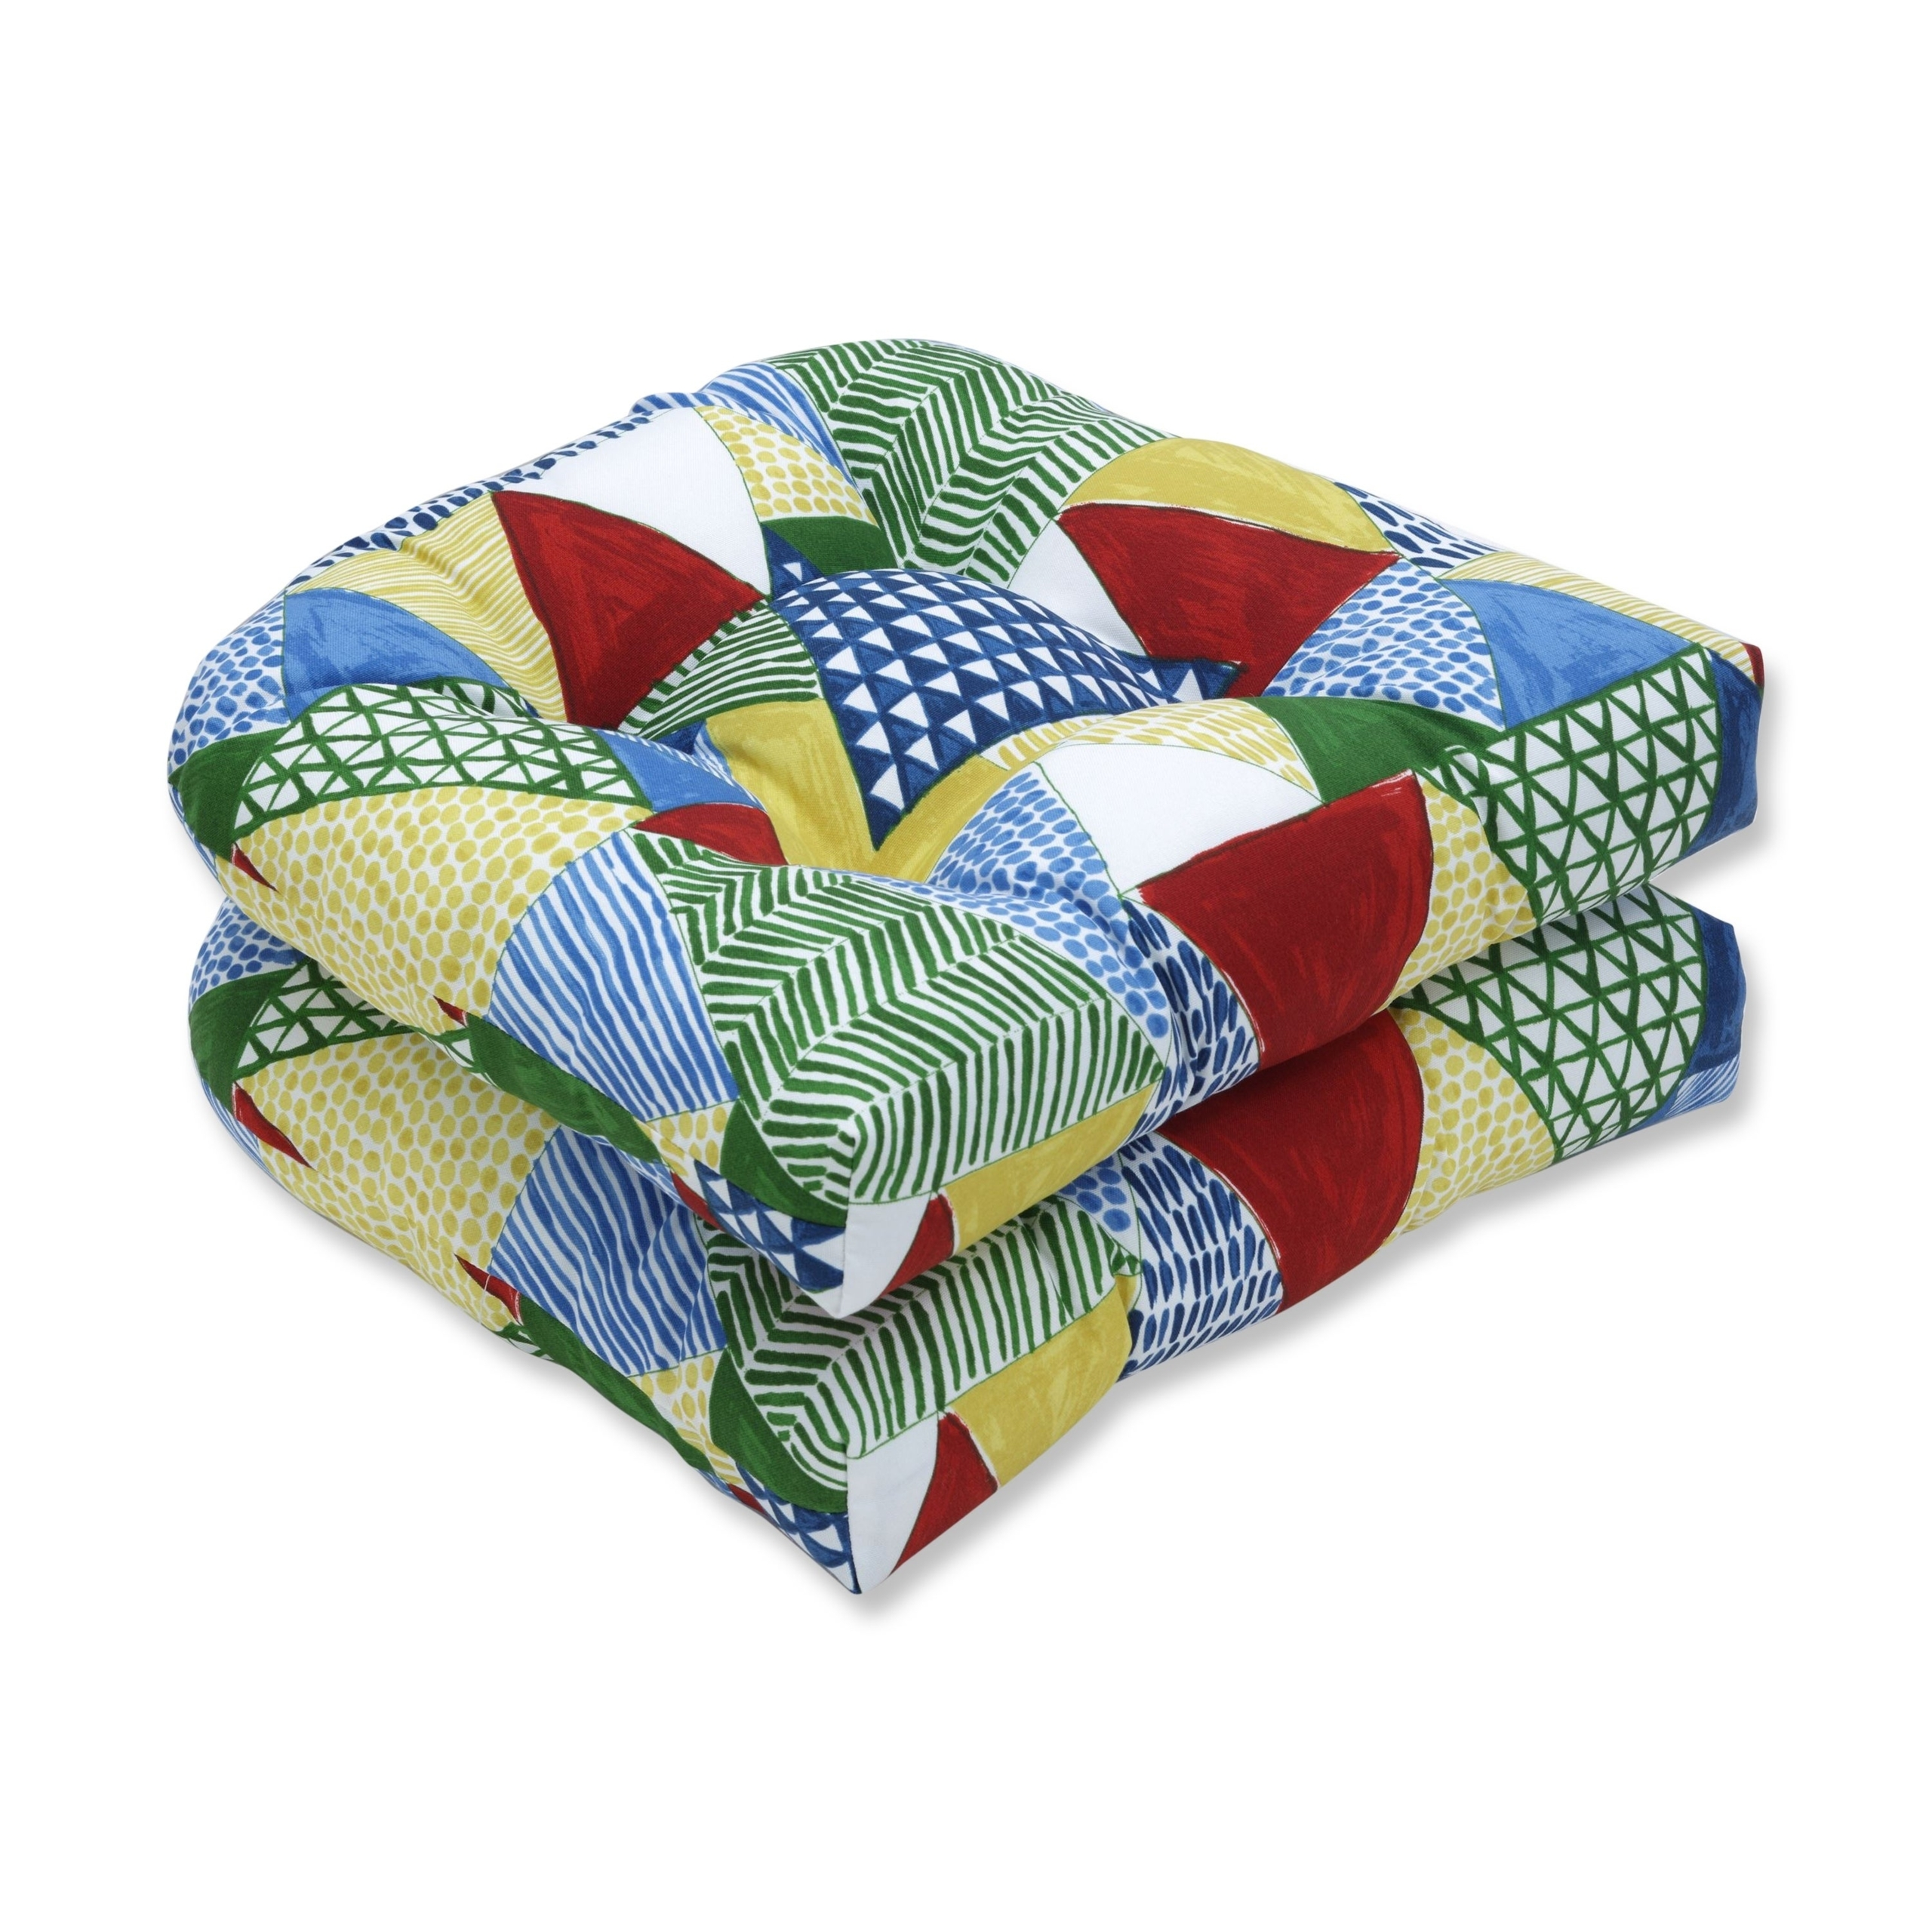 Cushions For Wicker Furniture You Ll Love In 2021 Visualhunt